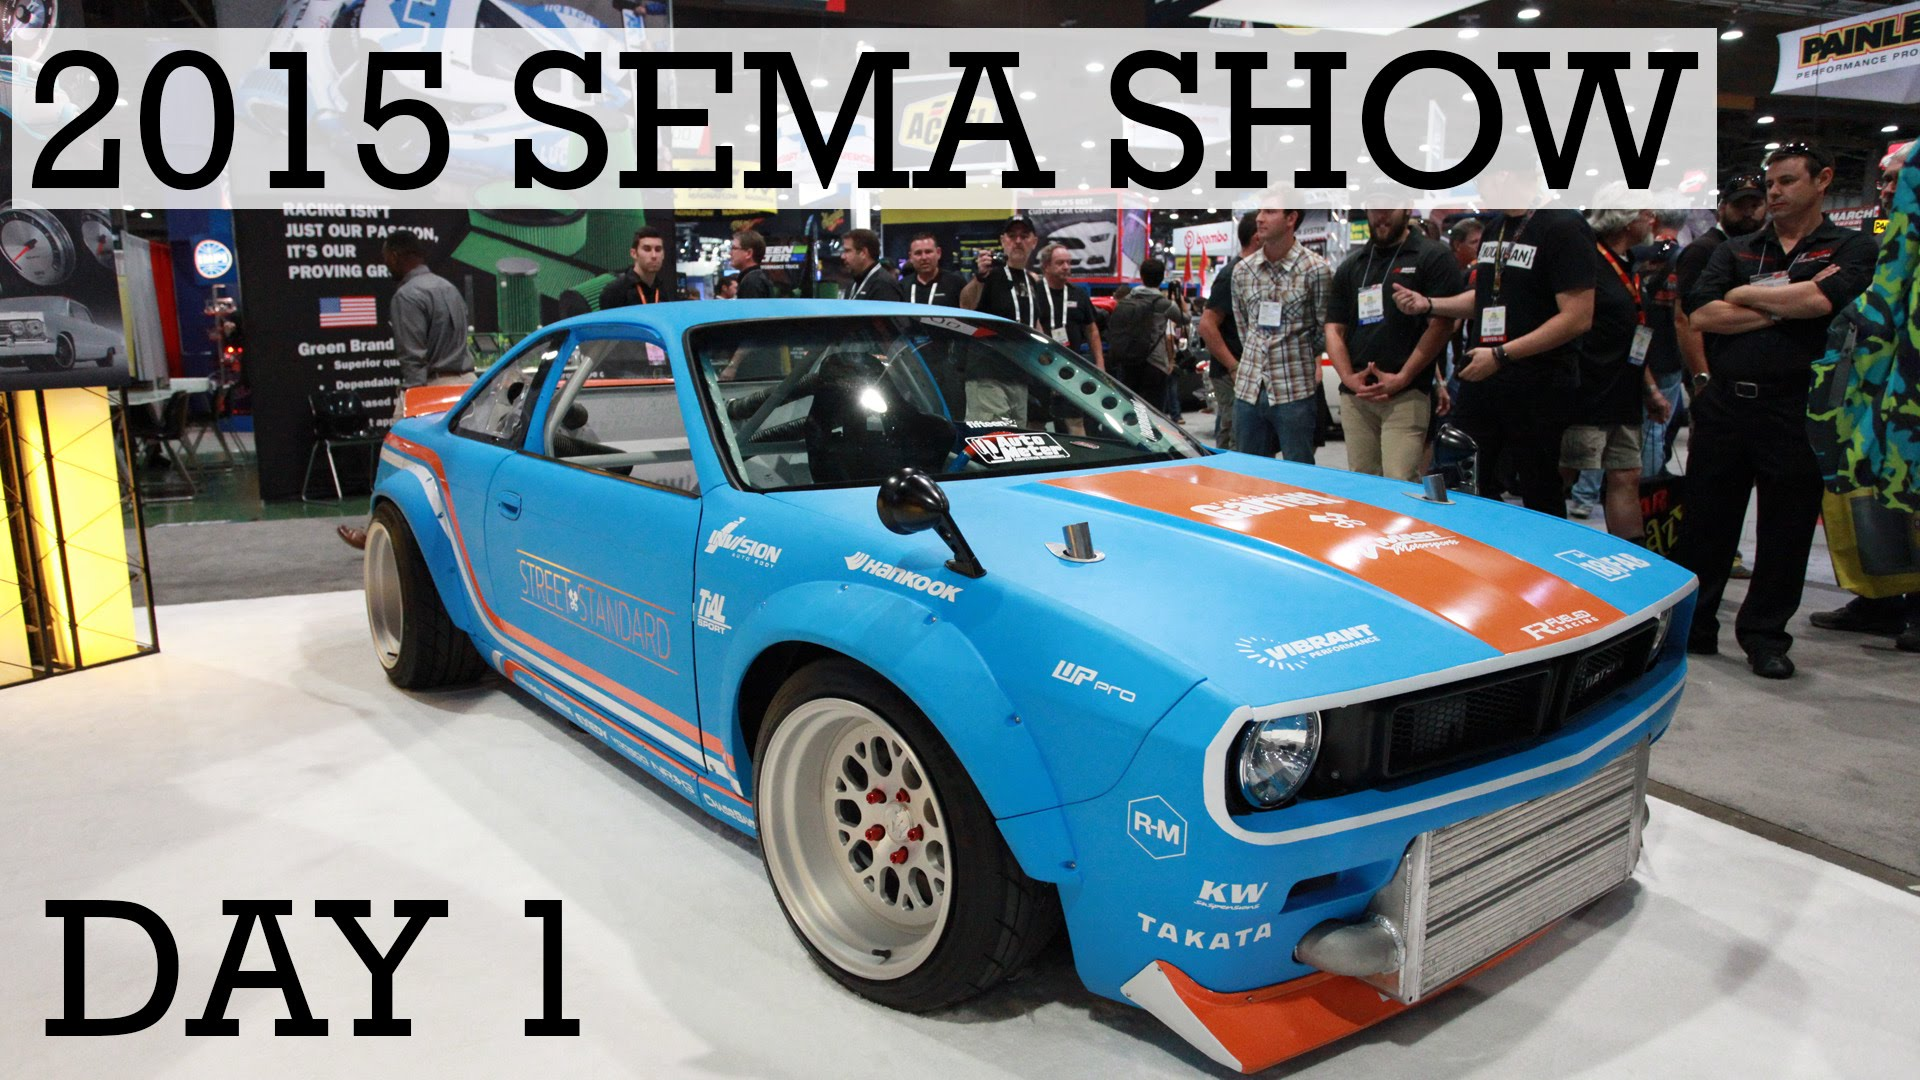 SEMA Show Full Of Hot Girls Awesome New Cars Incredible New - Awesome new cars